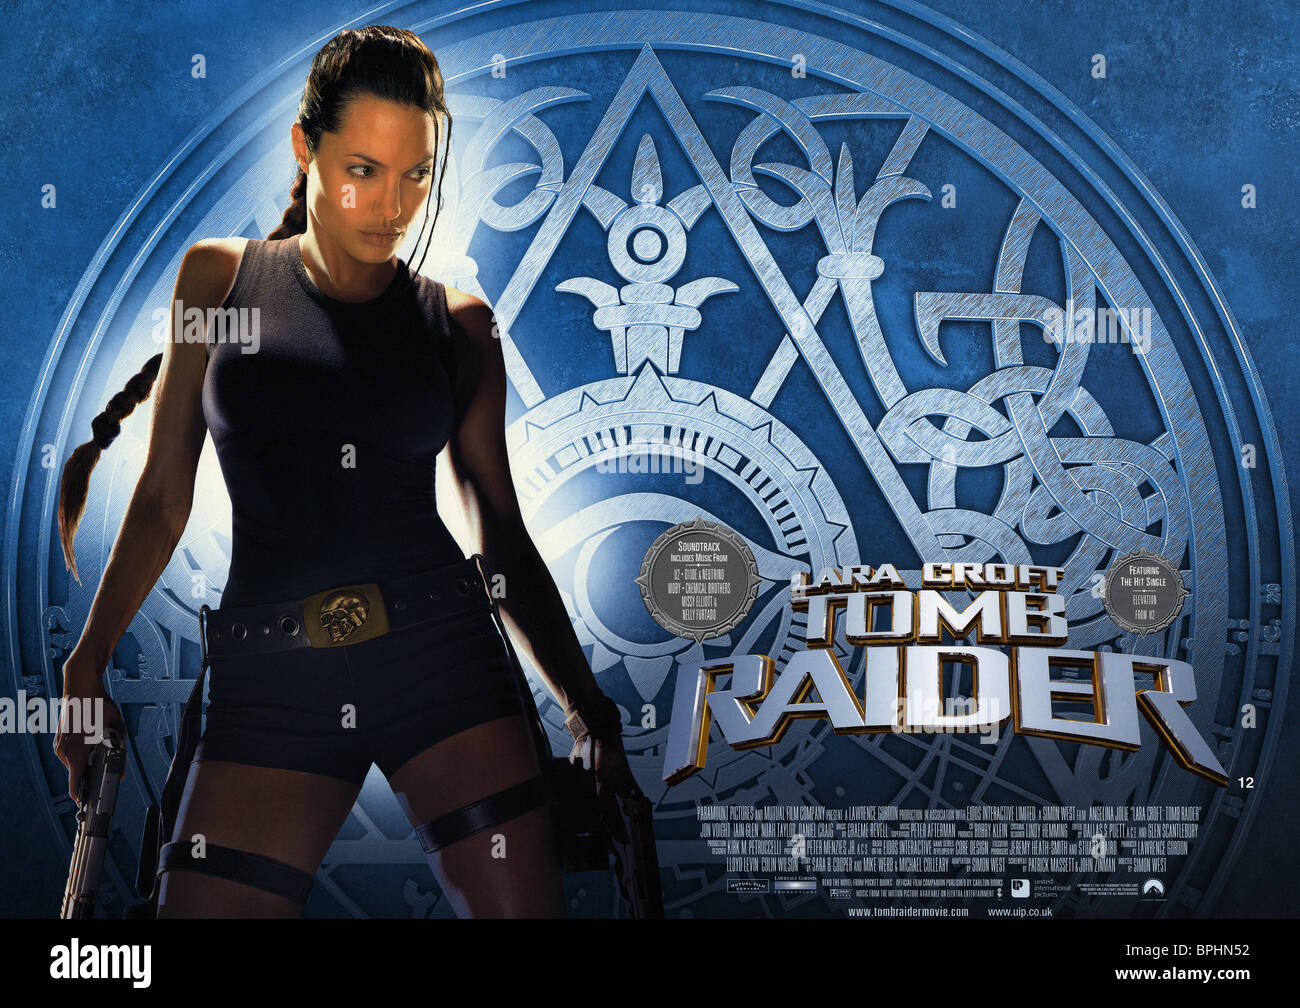 Movie Poster Film Title Lara Croft High Resolution Stock